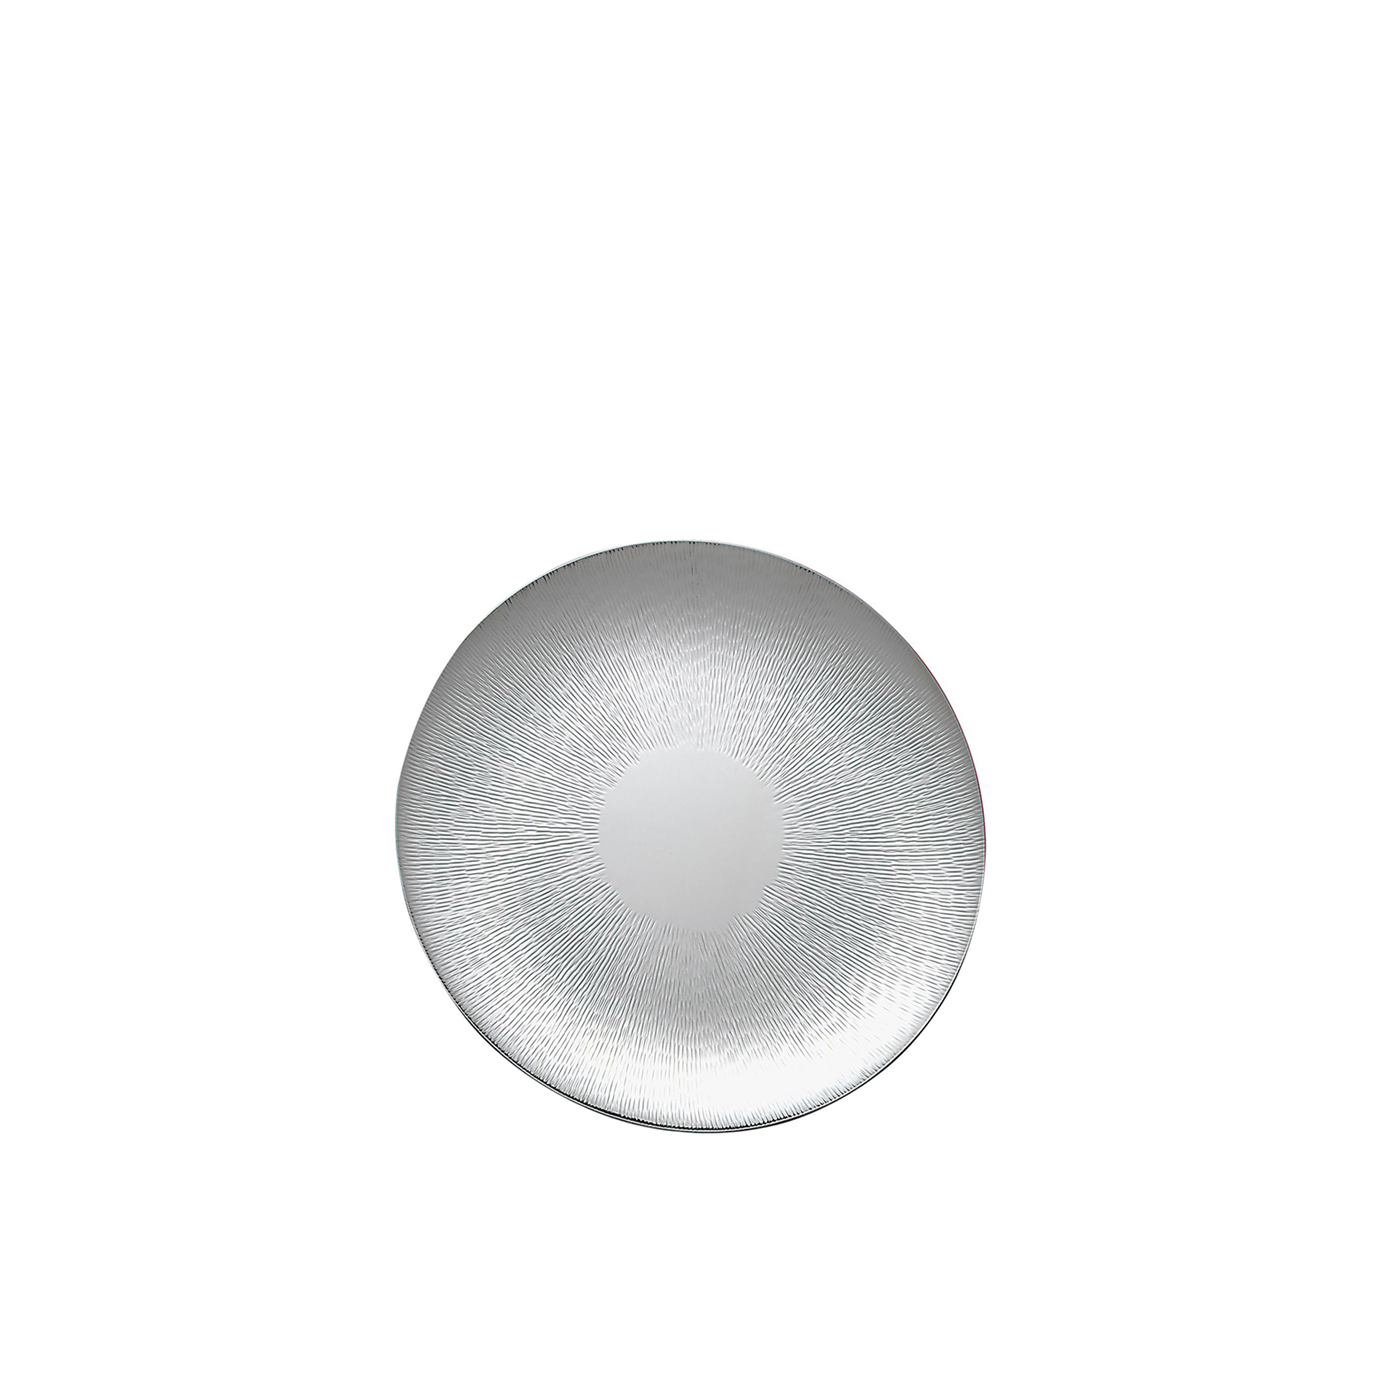 Sun Dish - Add glamour to each and every place setting with this silver charger plate. Designed to sit underneath a dinner plate, this silver design adds a decorative feel to every table.  Boasting a hand-hammered design, the result is a sun-inspired aesthetic. The Sublime Sun plate is ideal for special occasions but it can also add luxury to your everyday life.  | Matter of Stuff